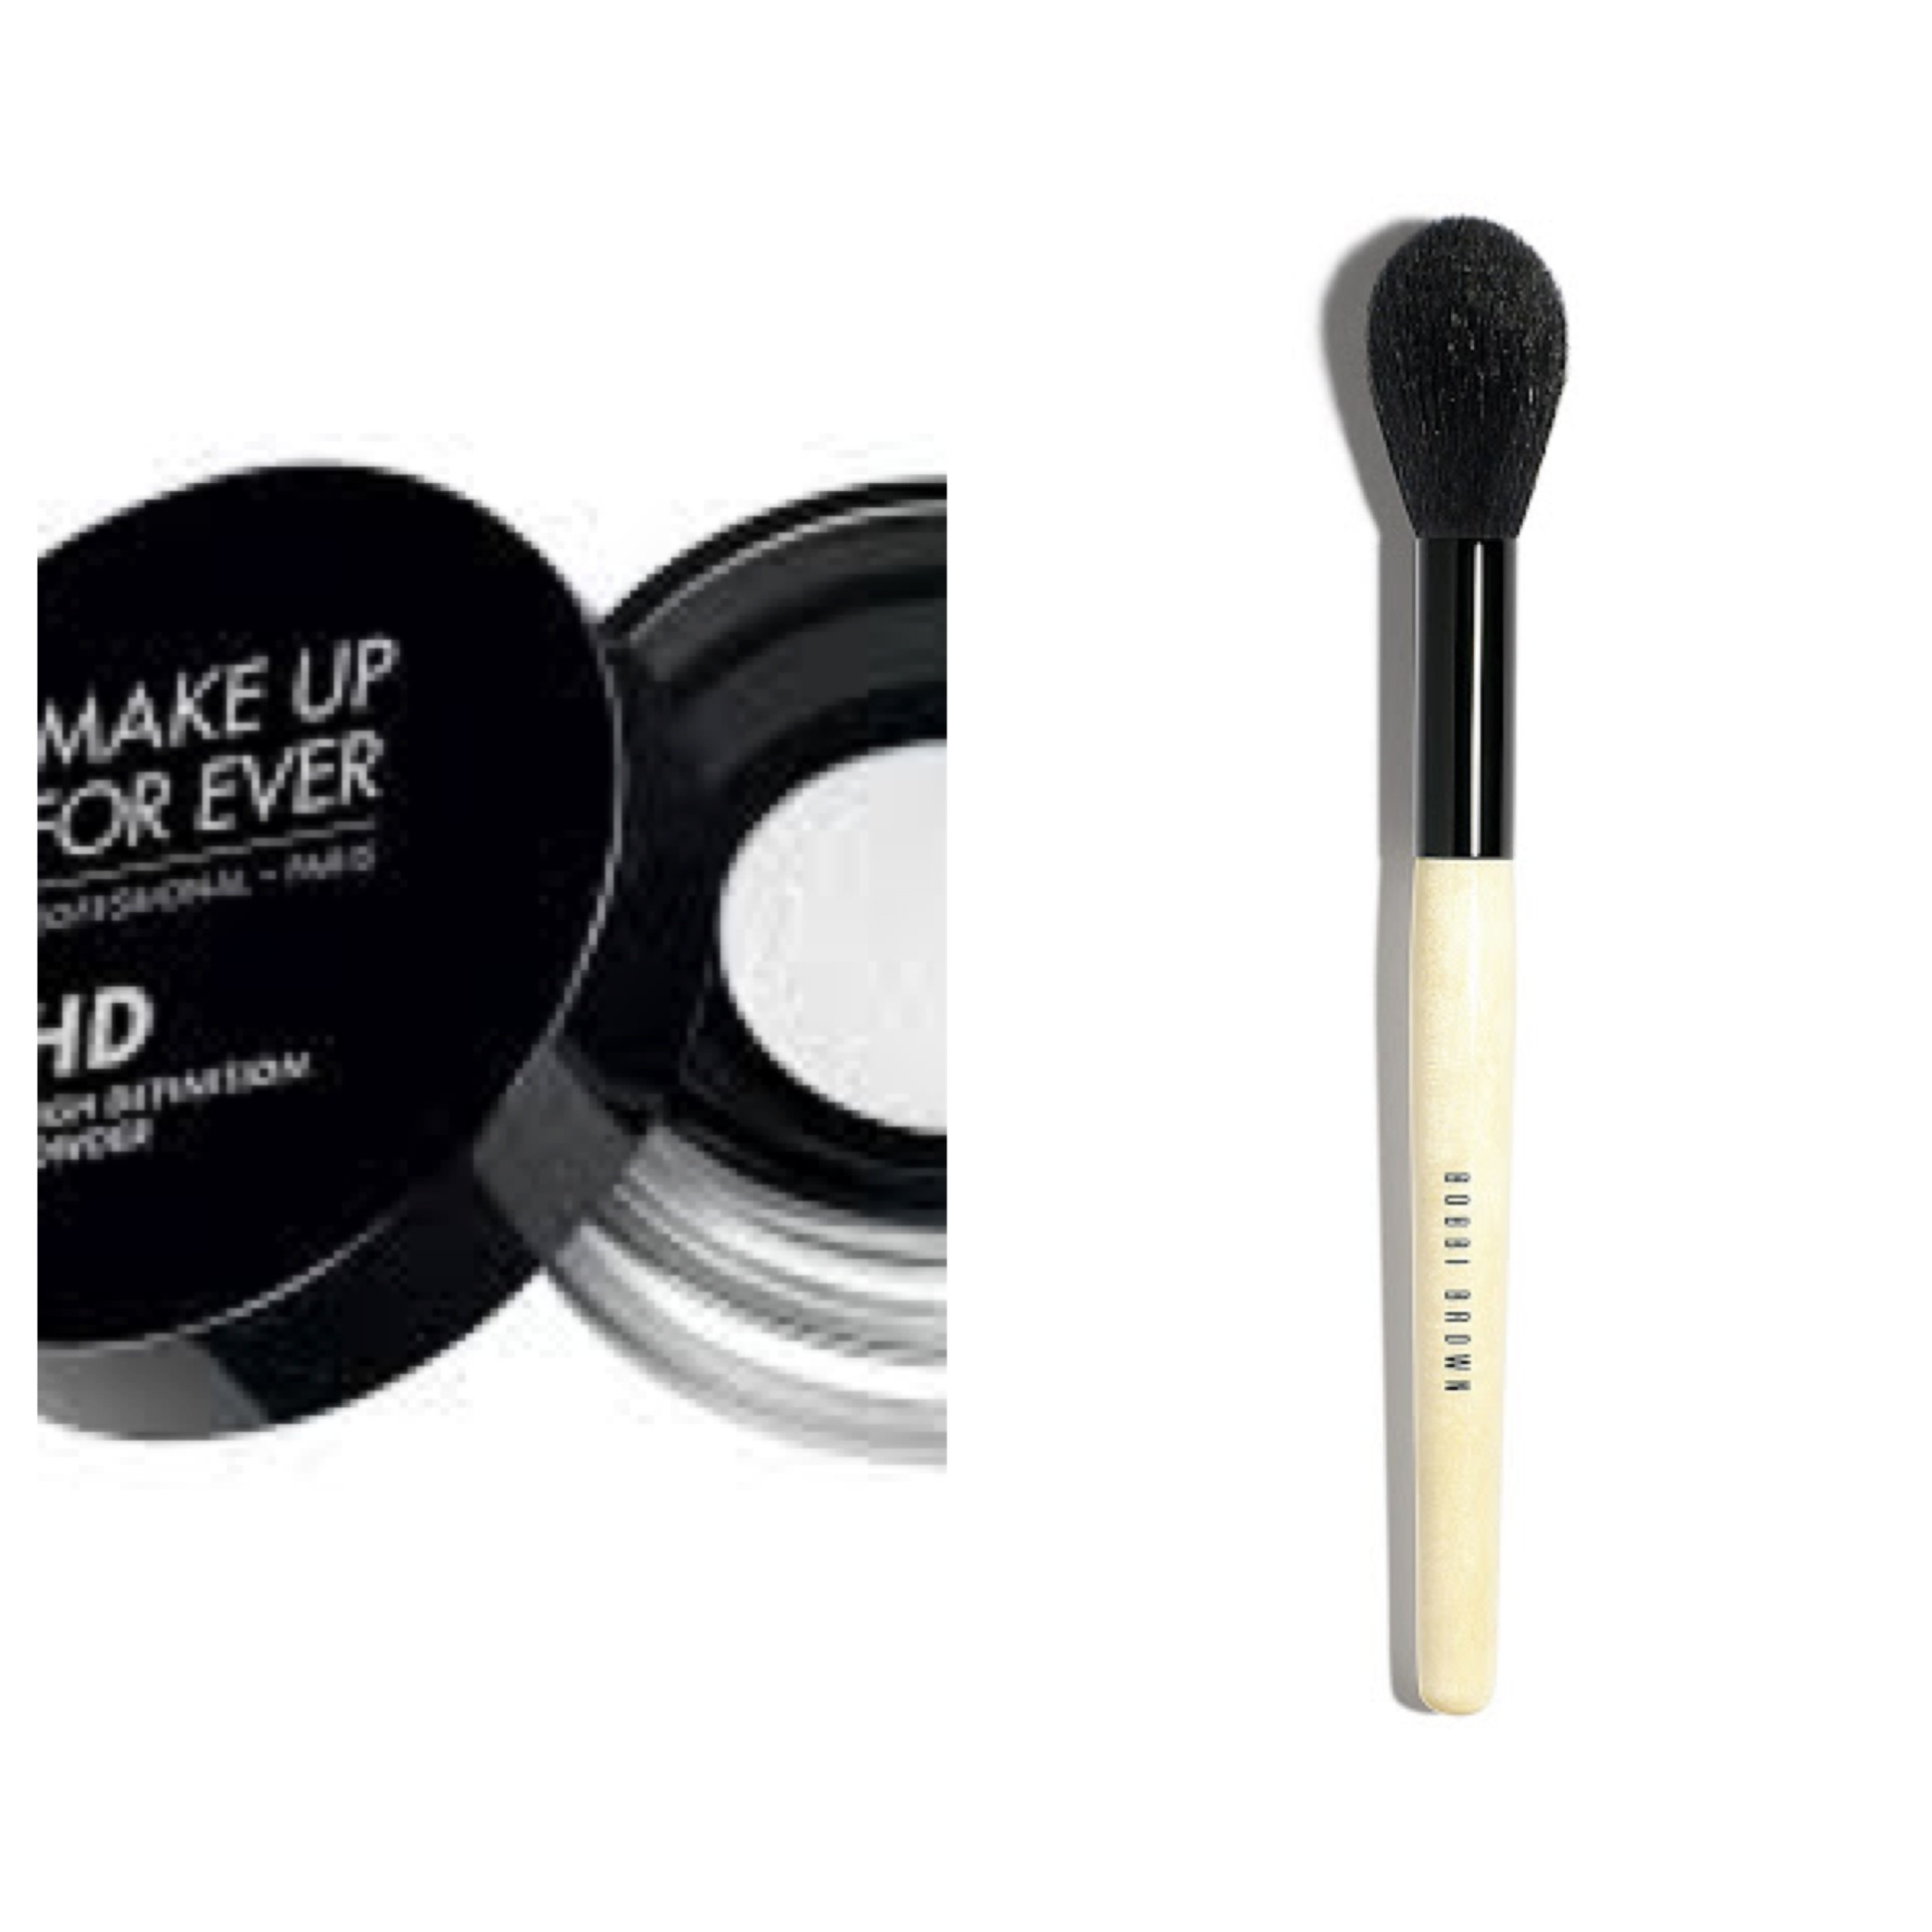 Makeup forever hd powder mini